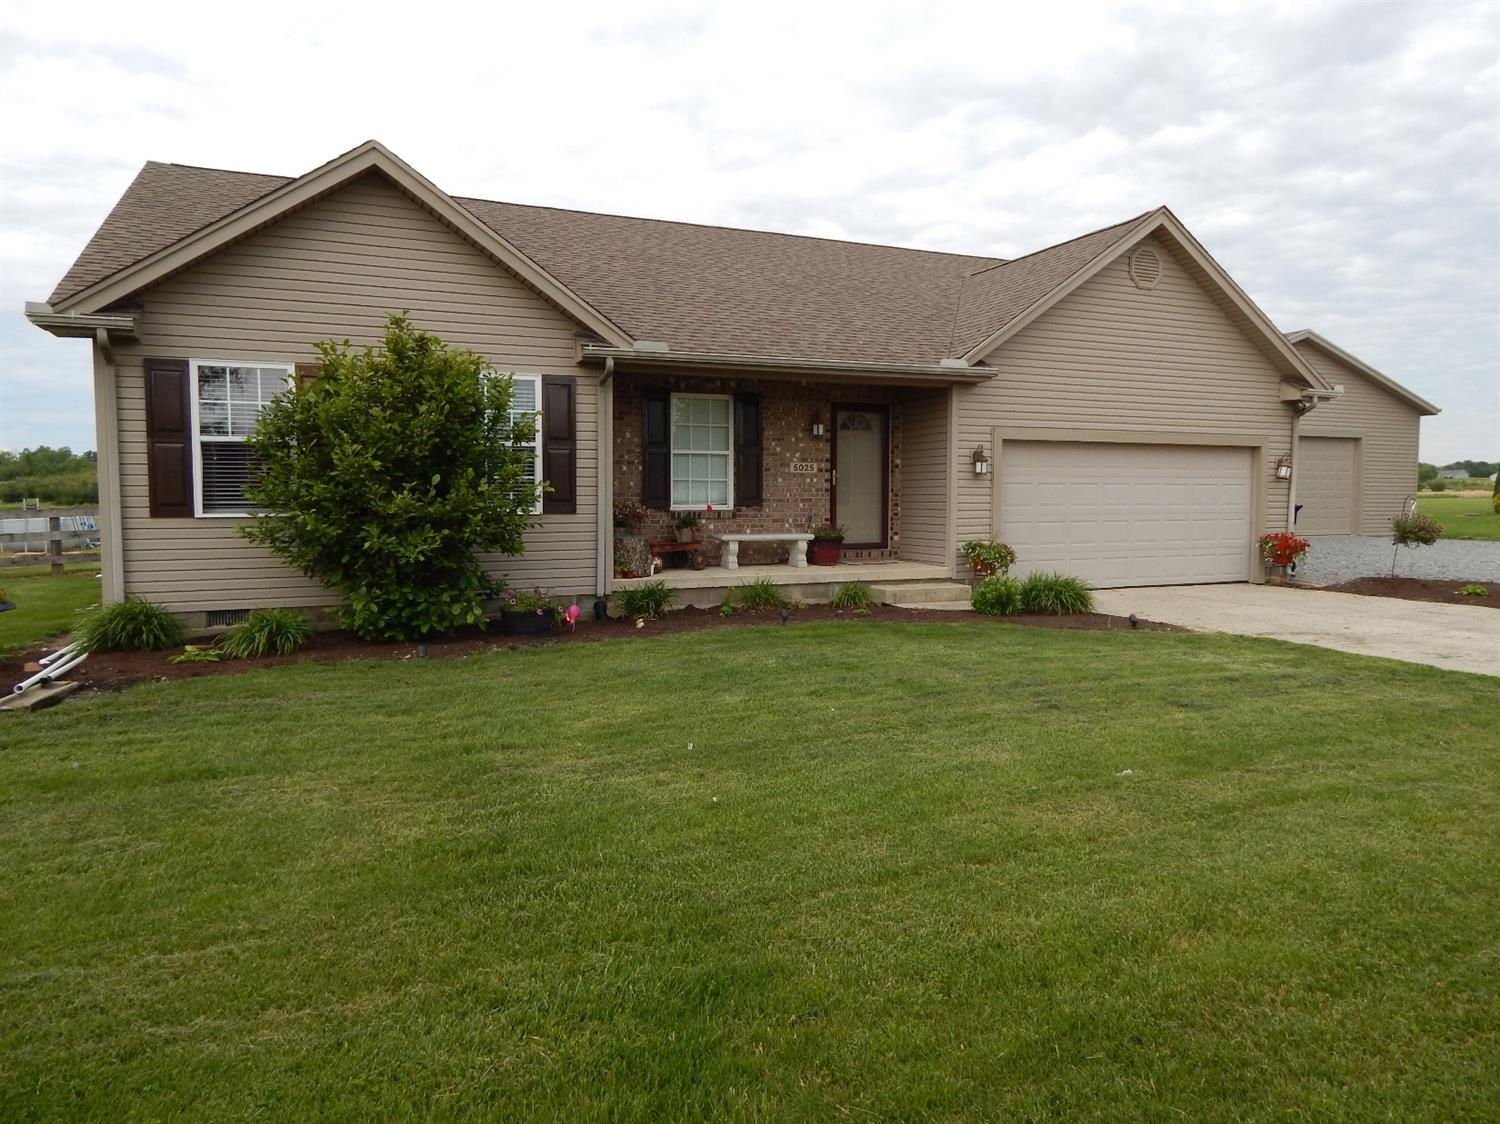 5025 panhandle rd new vienna oh mls 1538731 ziprealty